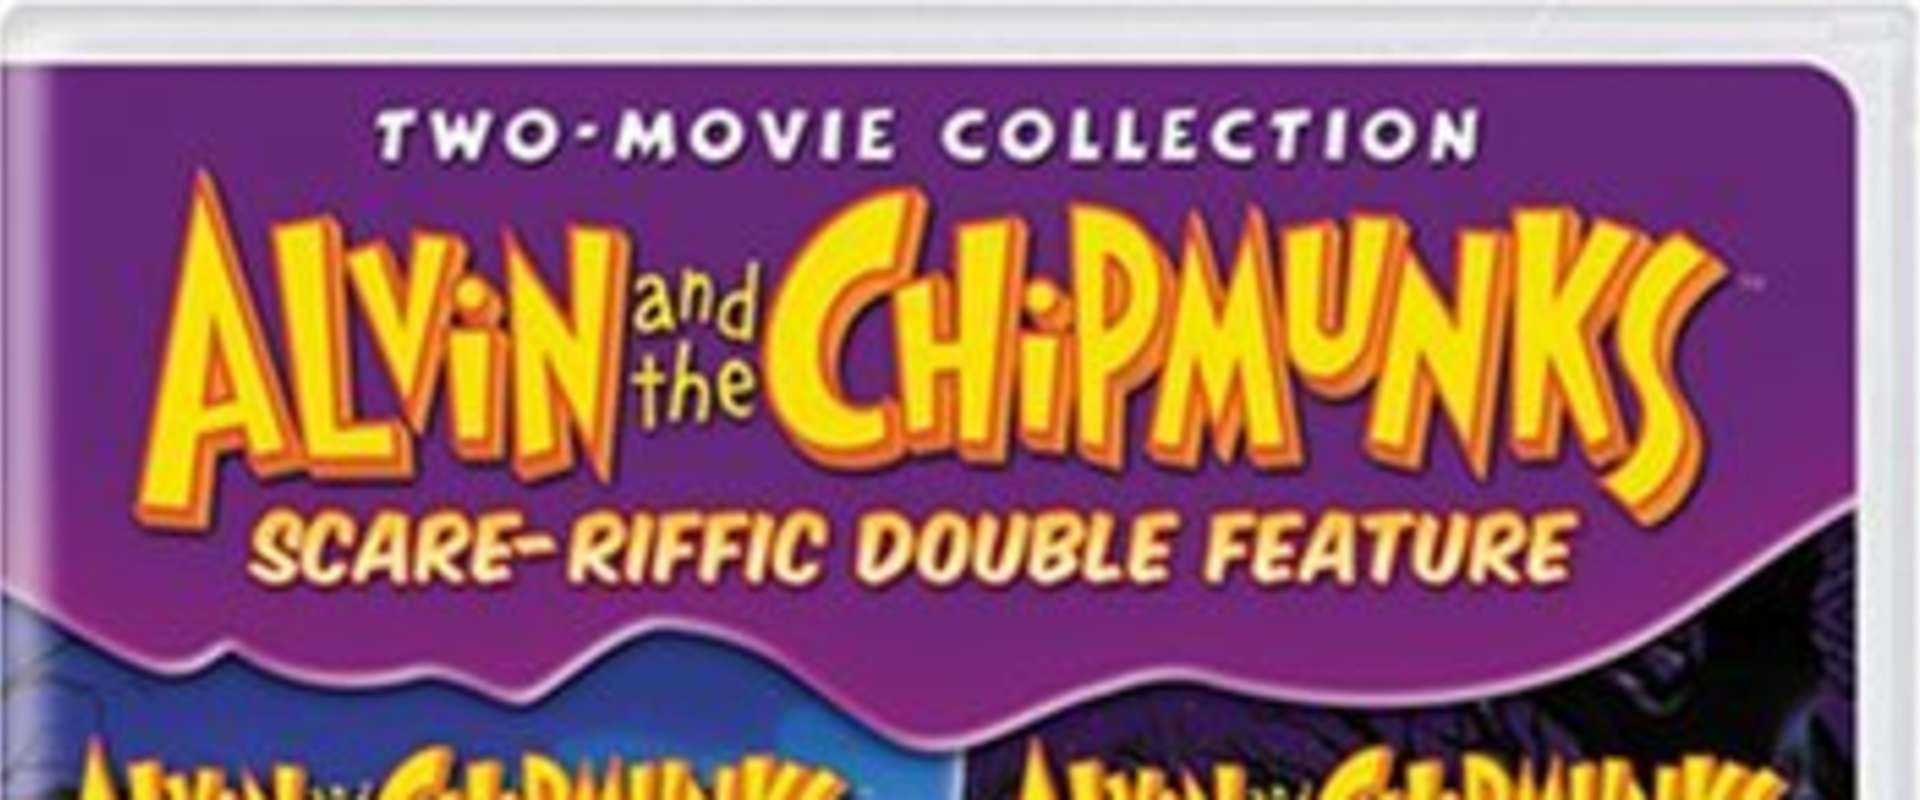 Alvin and the Chipmunks meet Frankenstein background 2